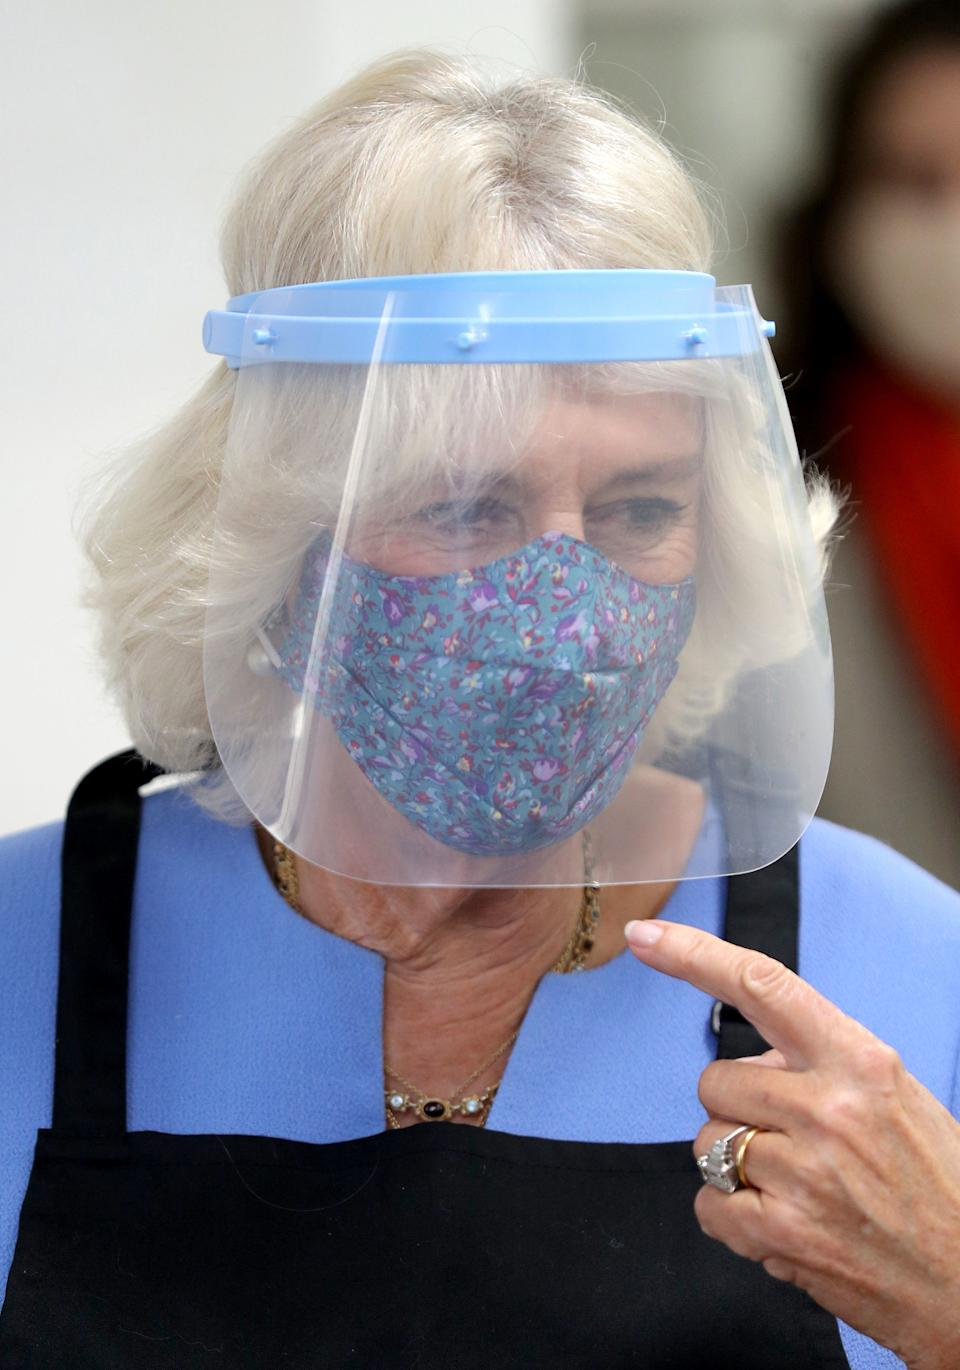 RICKMANSWORTH, ENGLAND - OCTOBER 08: Camilla, Duchess of Cornwall, in her role as President of the Royal Voluntary Service, wears a face shield as she helps serving meals during a visit to The Royal Voluntary Service Lunch Club on October 8, 2020 in Rickmansworth, England. (Photo by Andrew Matthews - WPA Pool/Getty Images)